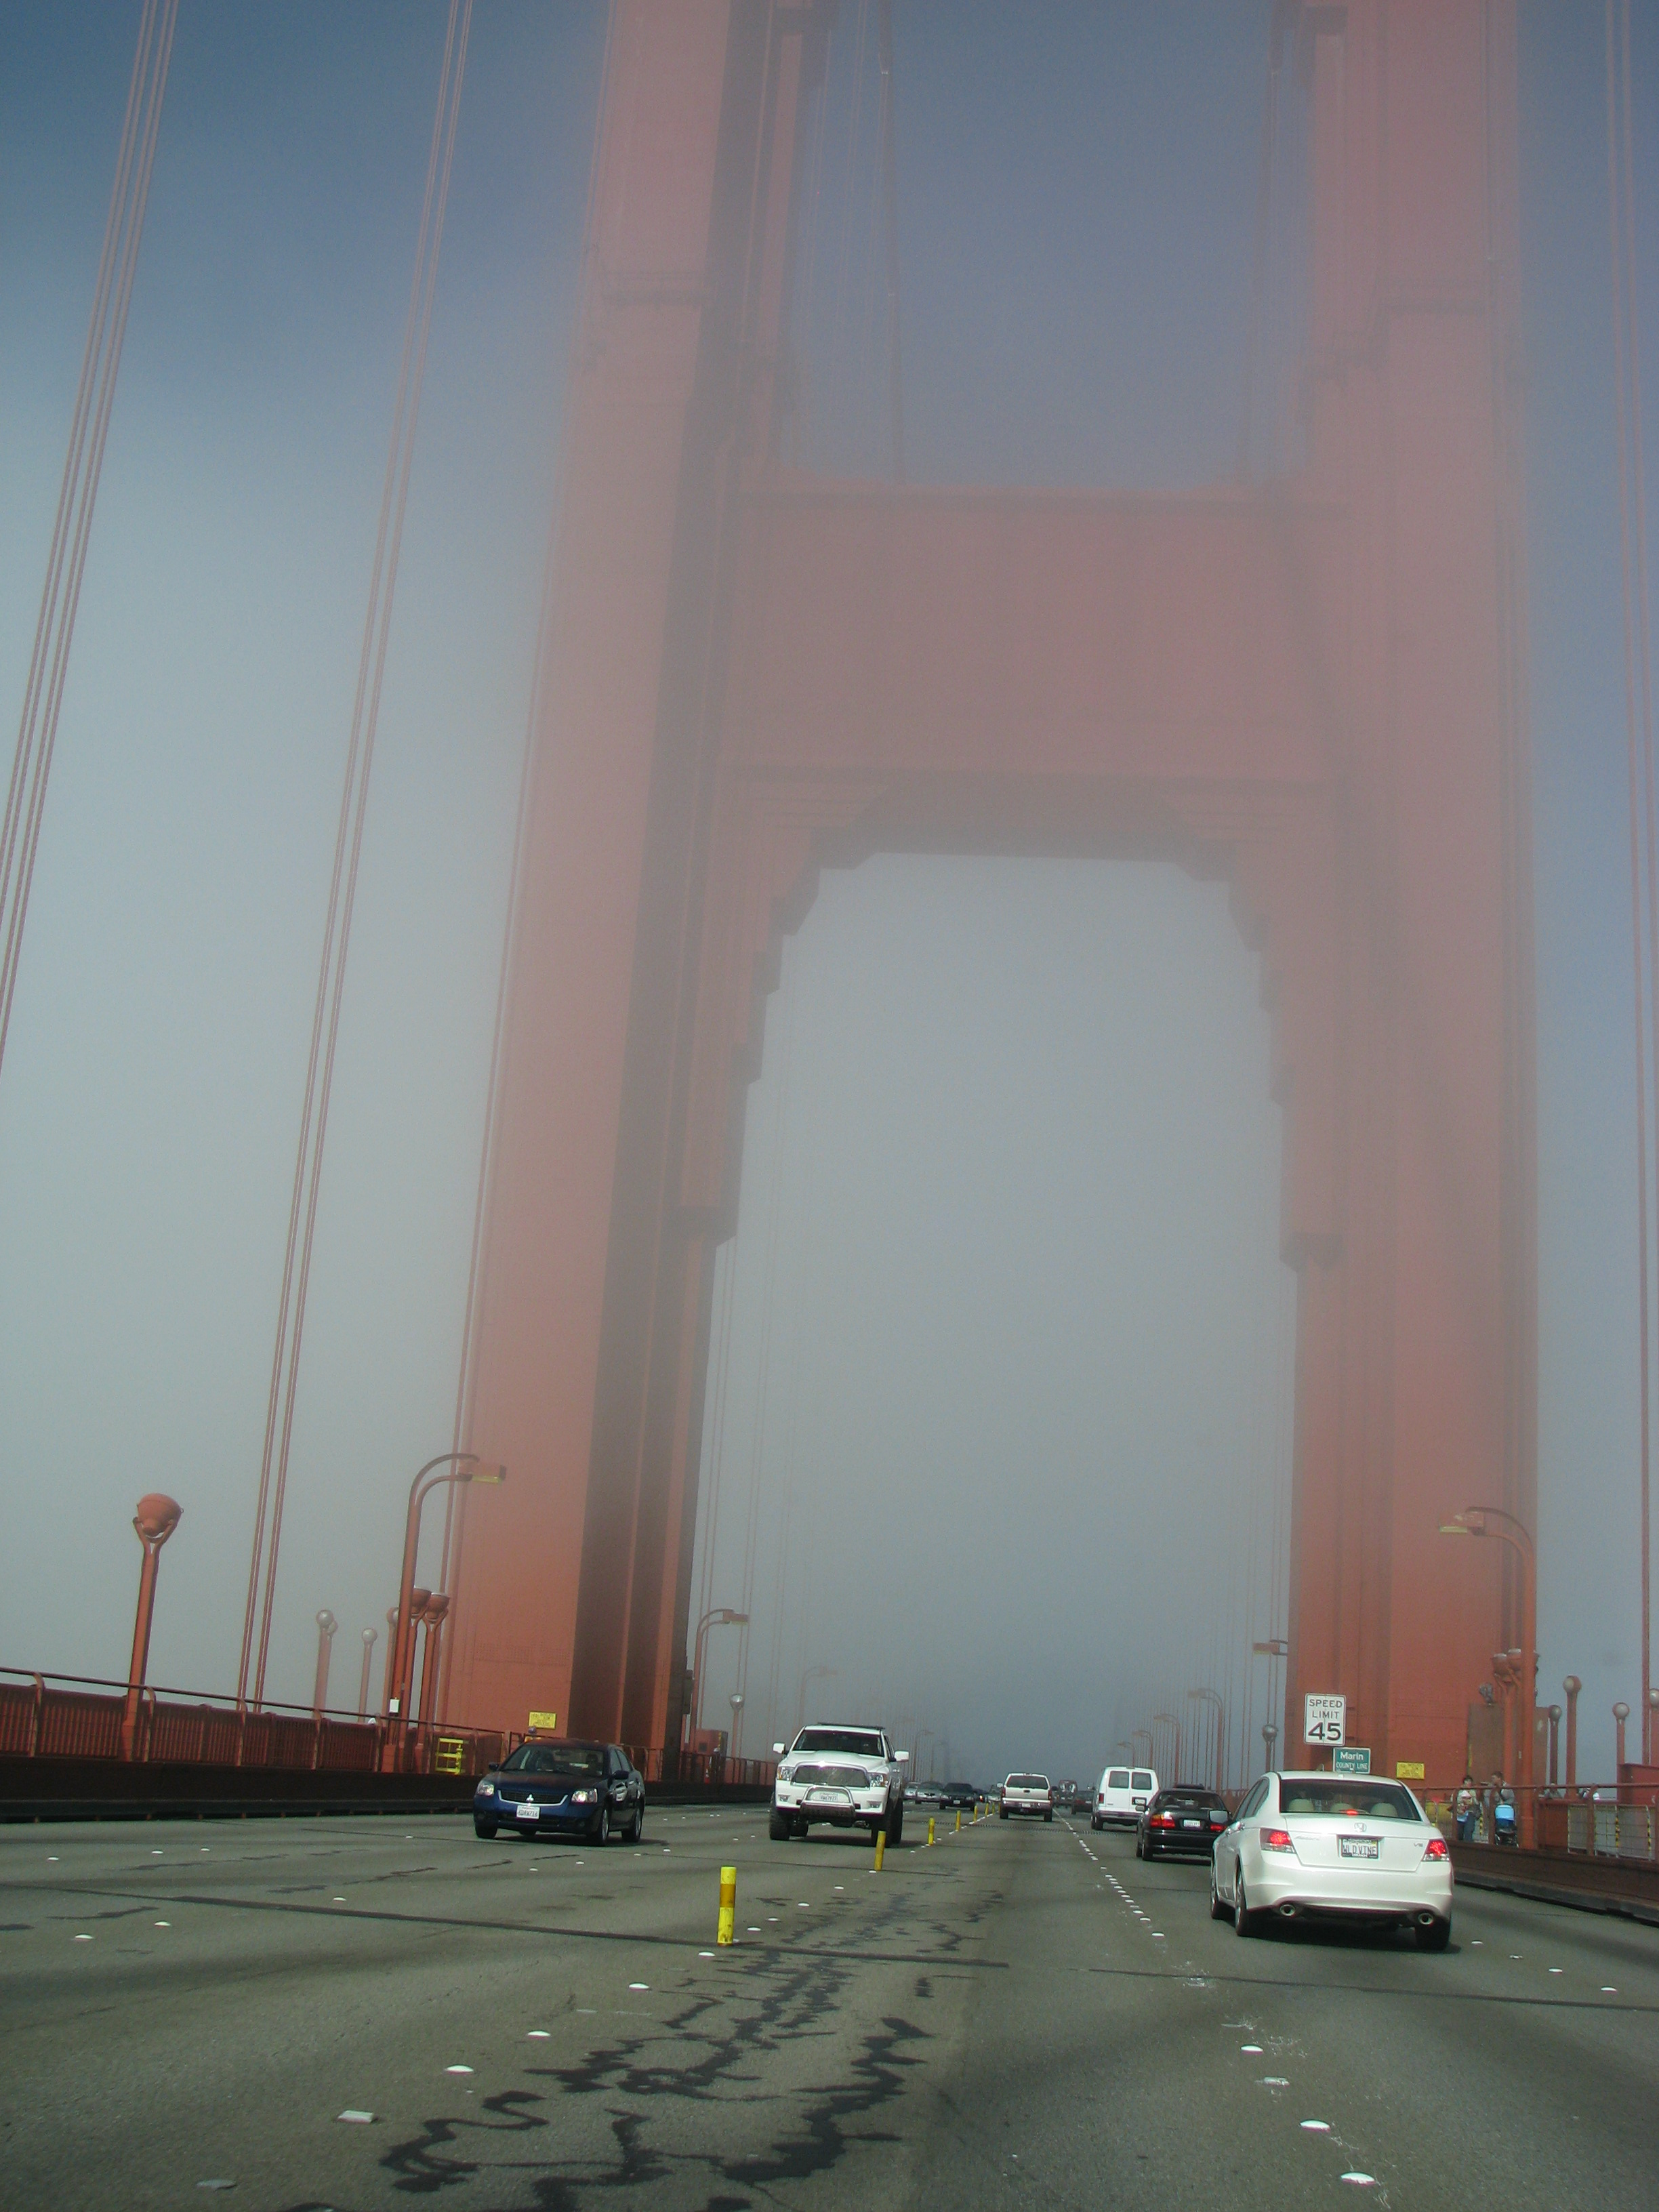 The Golden Gate Bridge on a foggy day as we drove across.